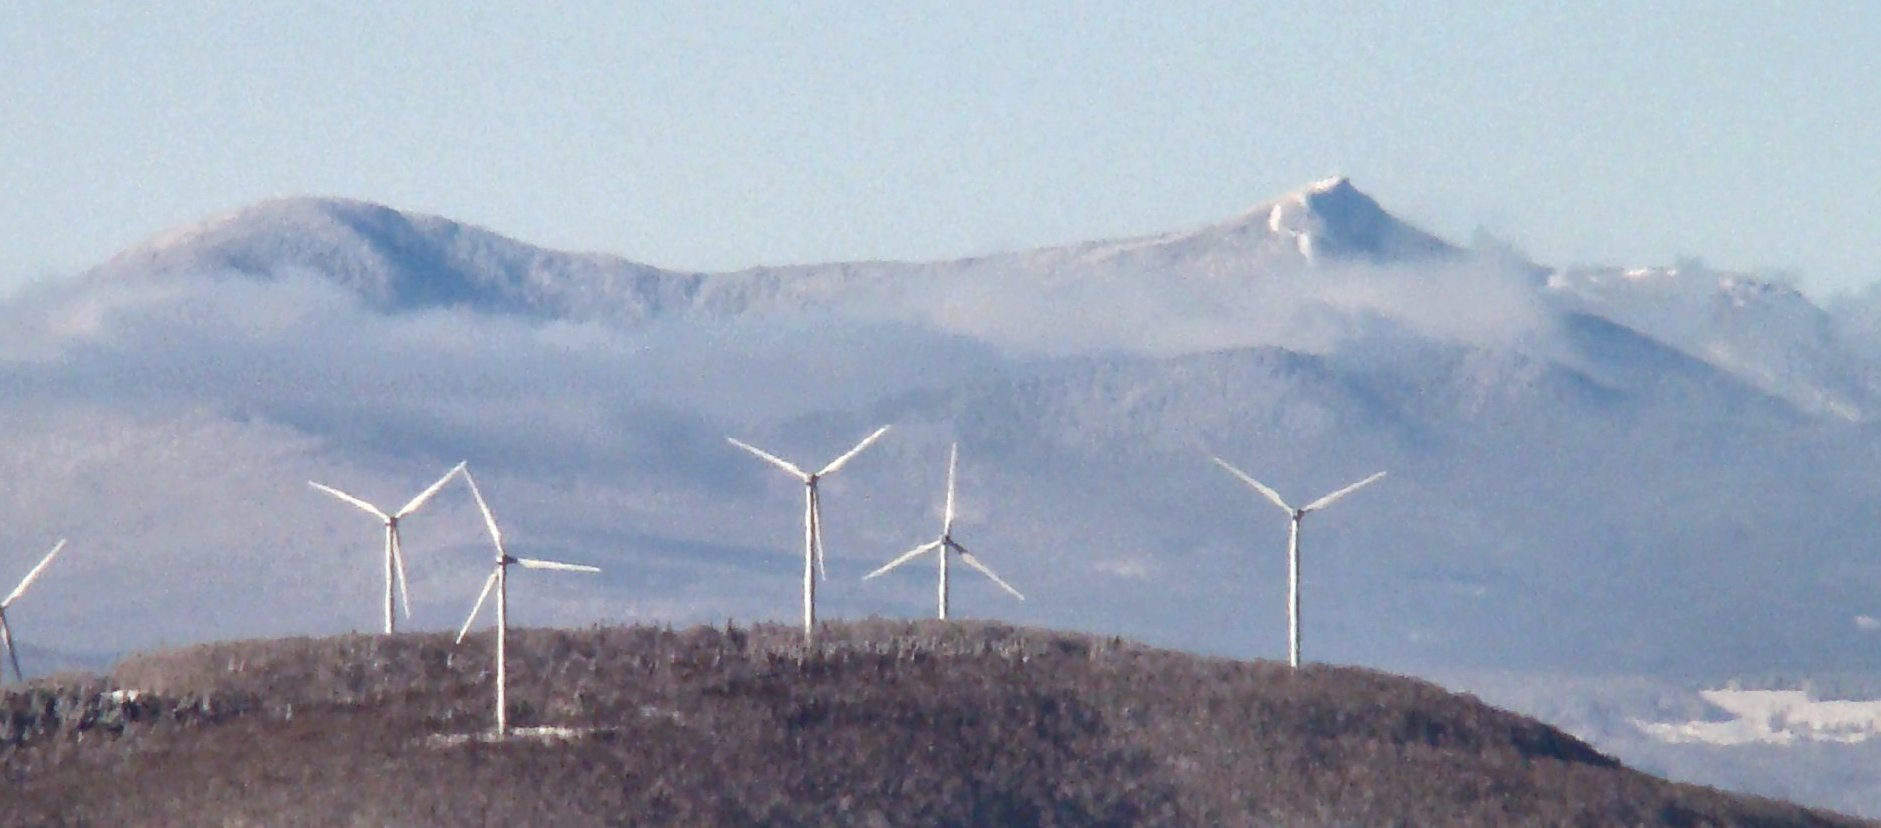 Sheffield wind farm Image: Wikimedia Commons